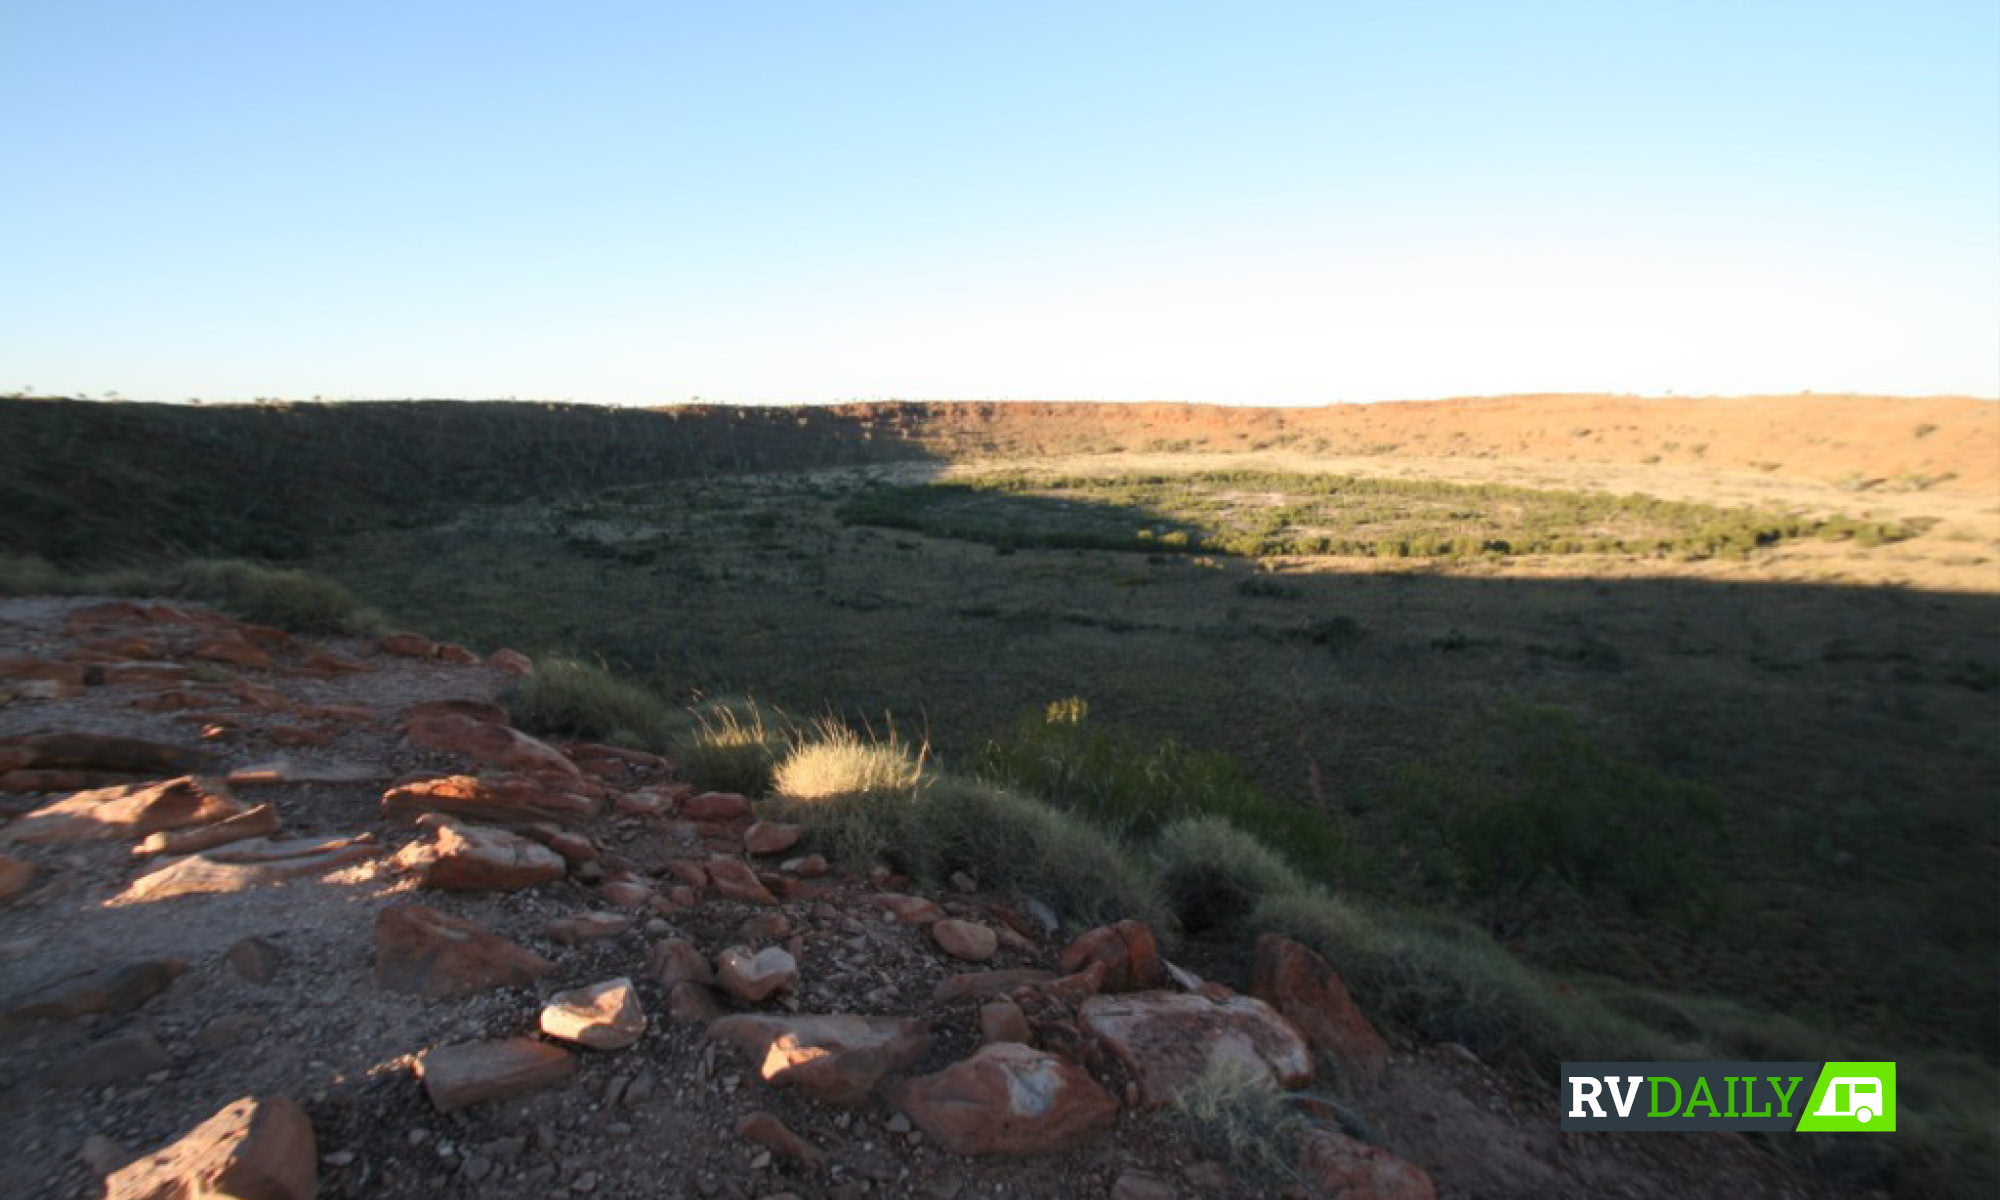 Wolfe Creek Crater in the Tanami road